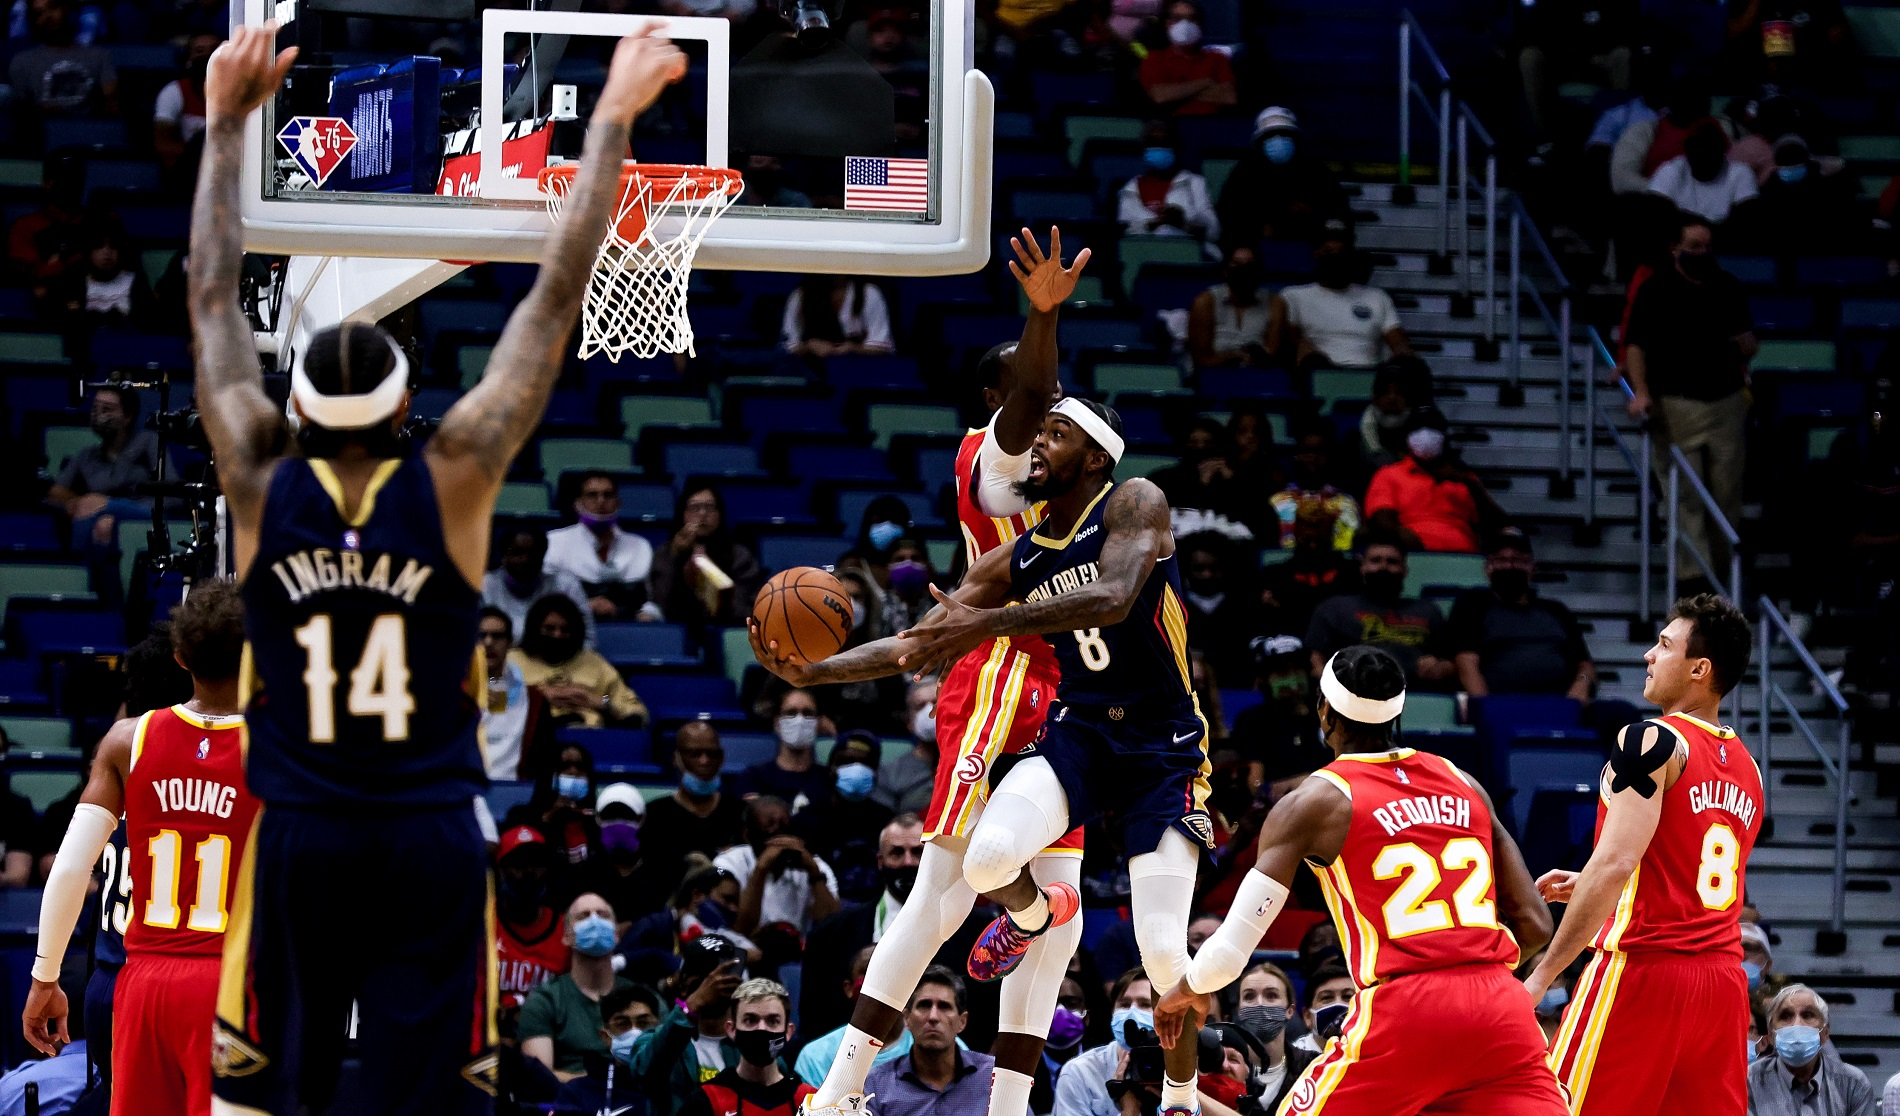 Hawks looking for better road result in New Orleans